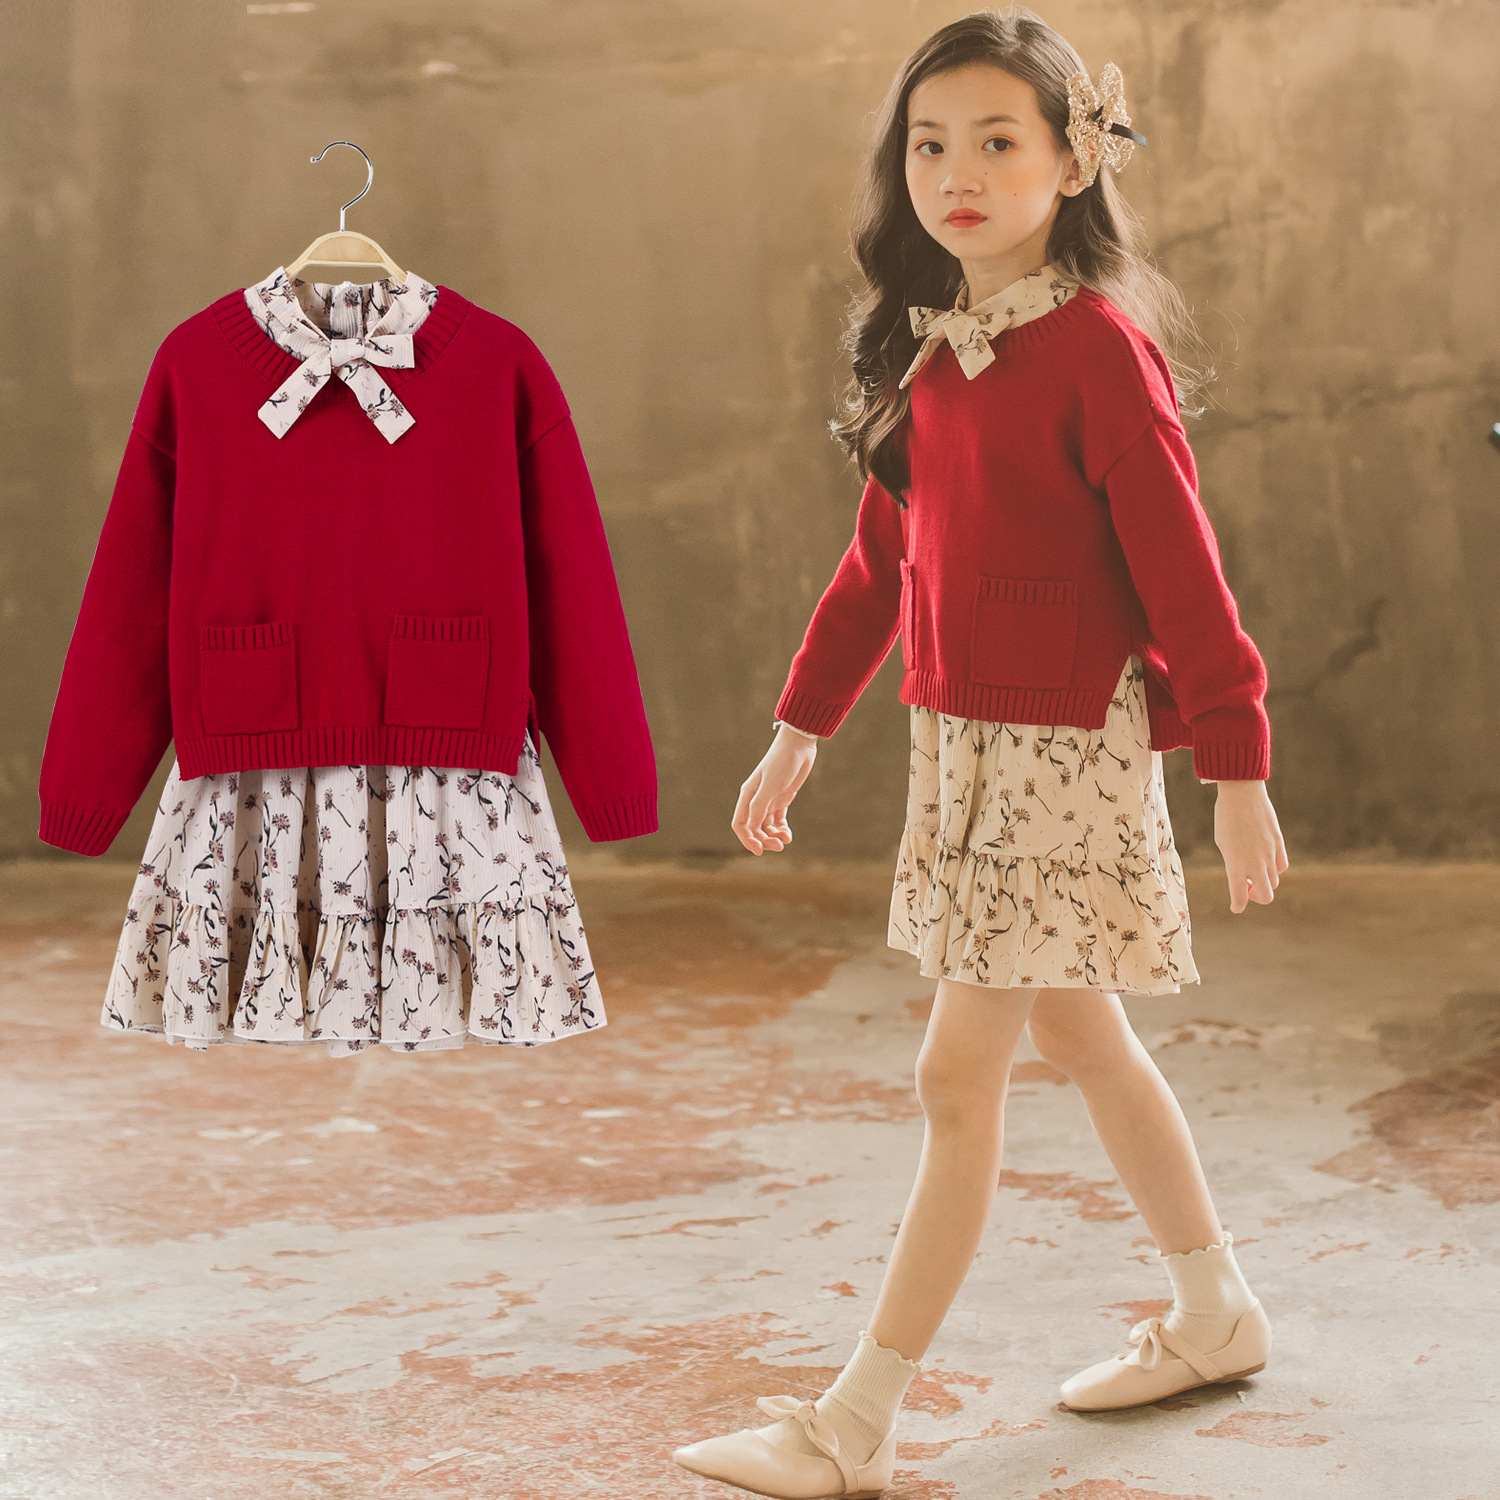 Little Girls Sweater Dress Two-pieces Floral Print Long Sleeve Chiffon Dress Autumn Winter Kids Outfit age 4 5 6 7 8 9 10 years 3 4 sleeve tribal print shift mini dress